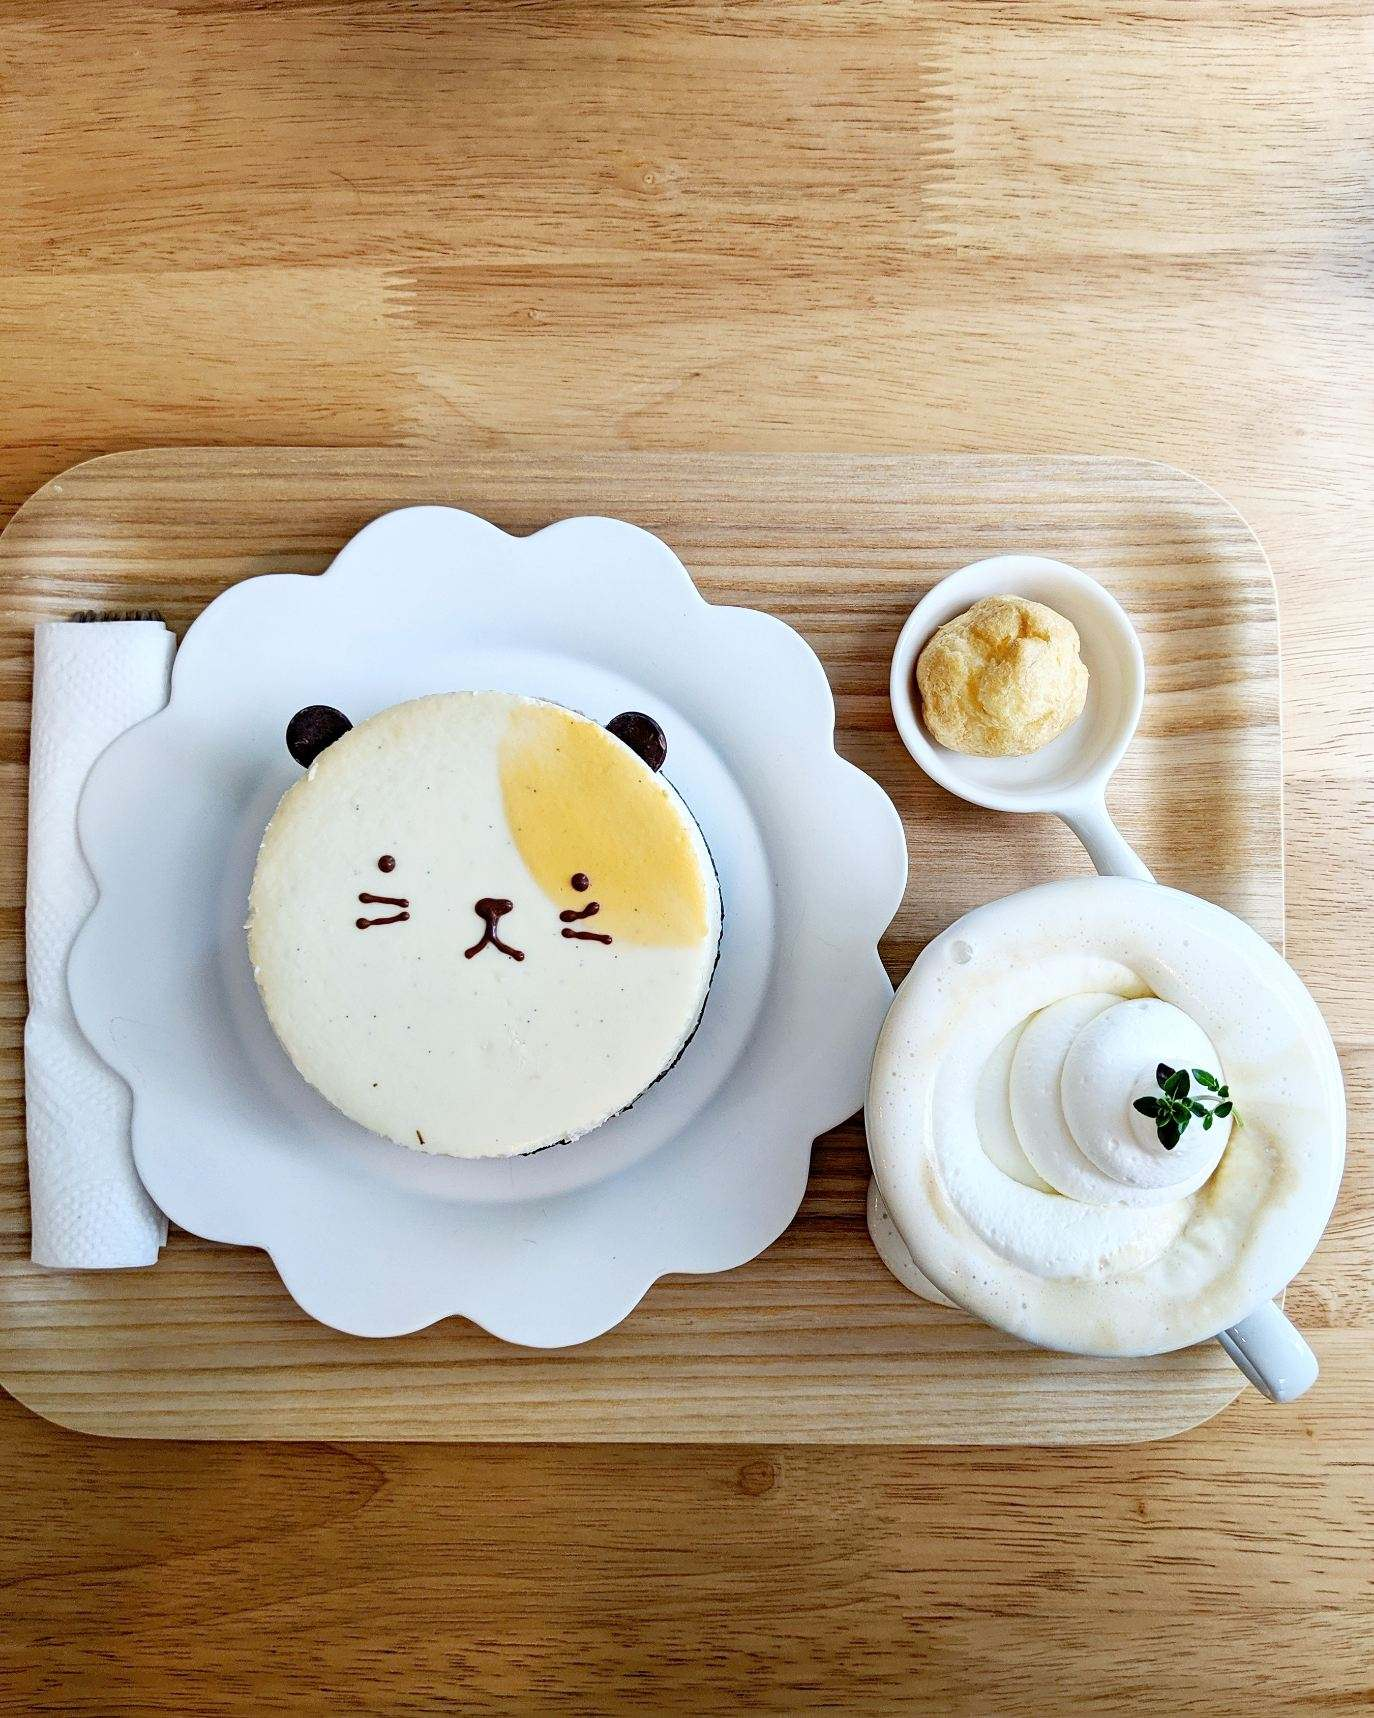 There's A New Korean Cafe Serving Adorable Desserts on East Burnside